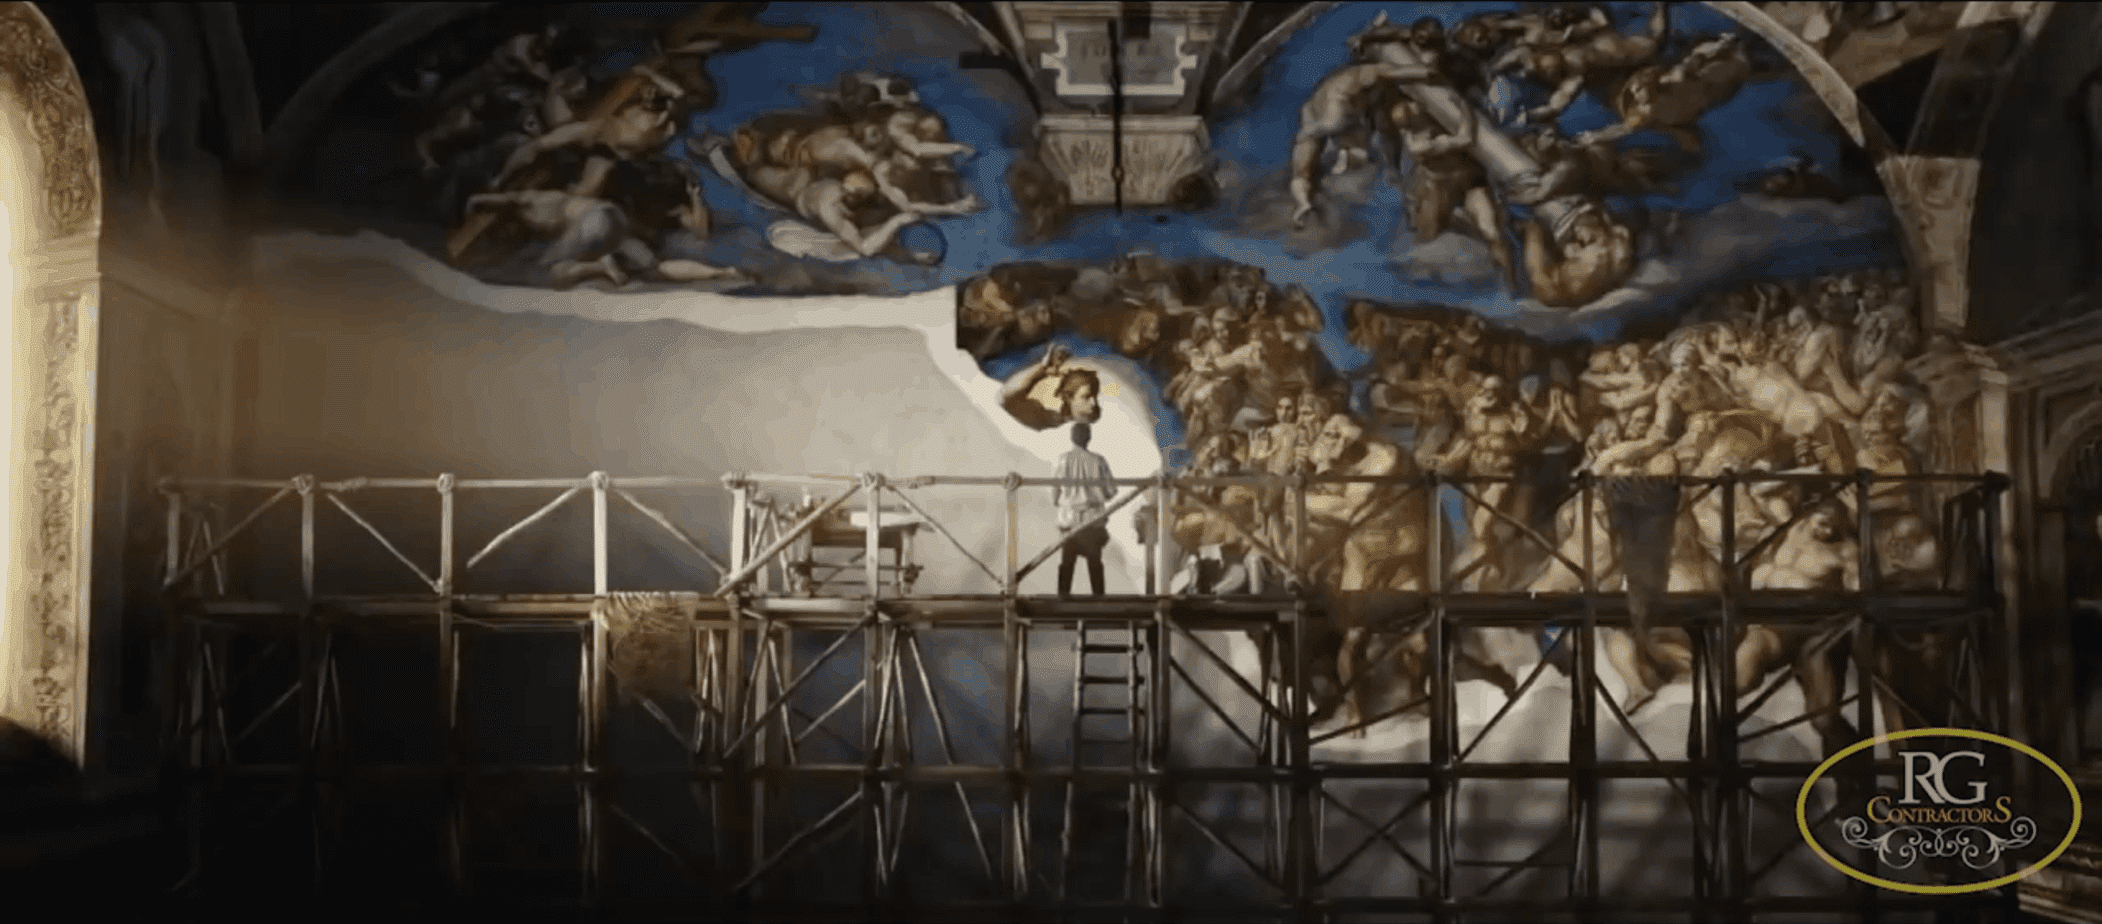 Michelangelo's First type of Scaffolding